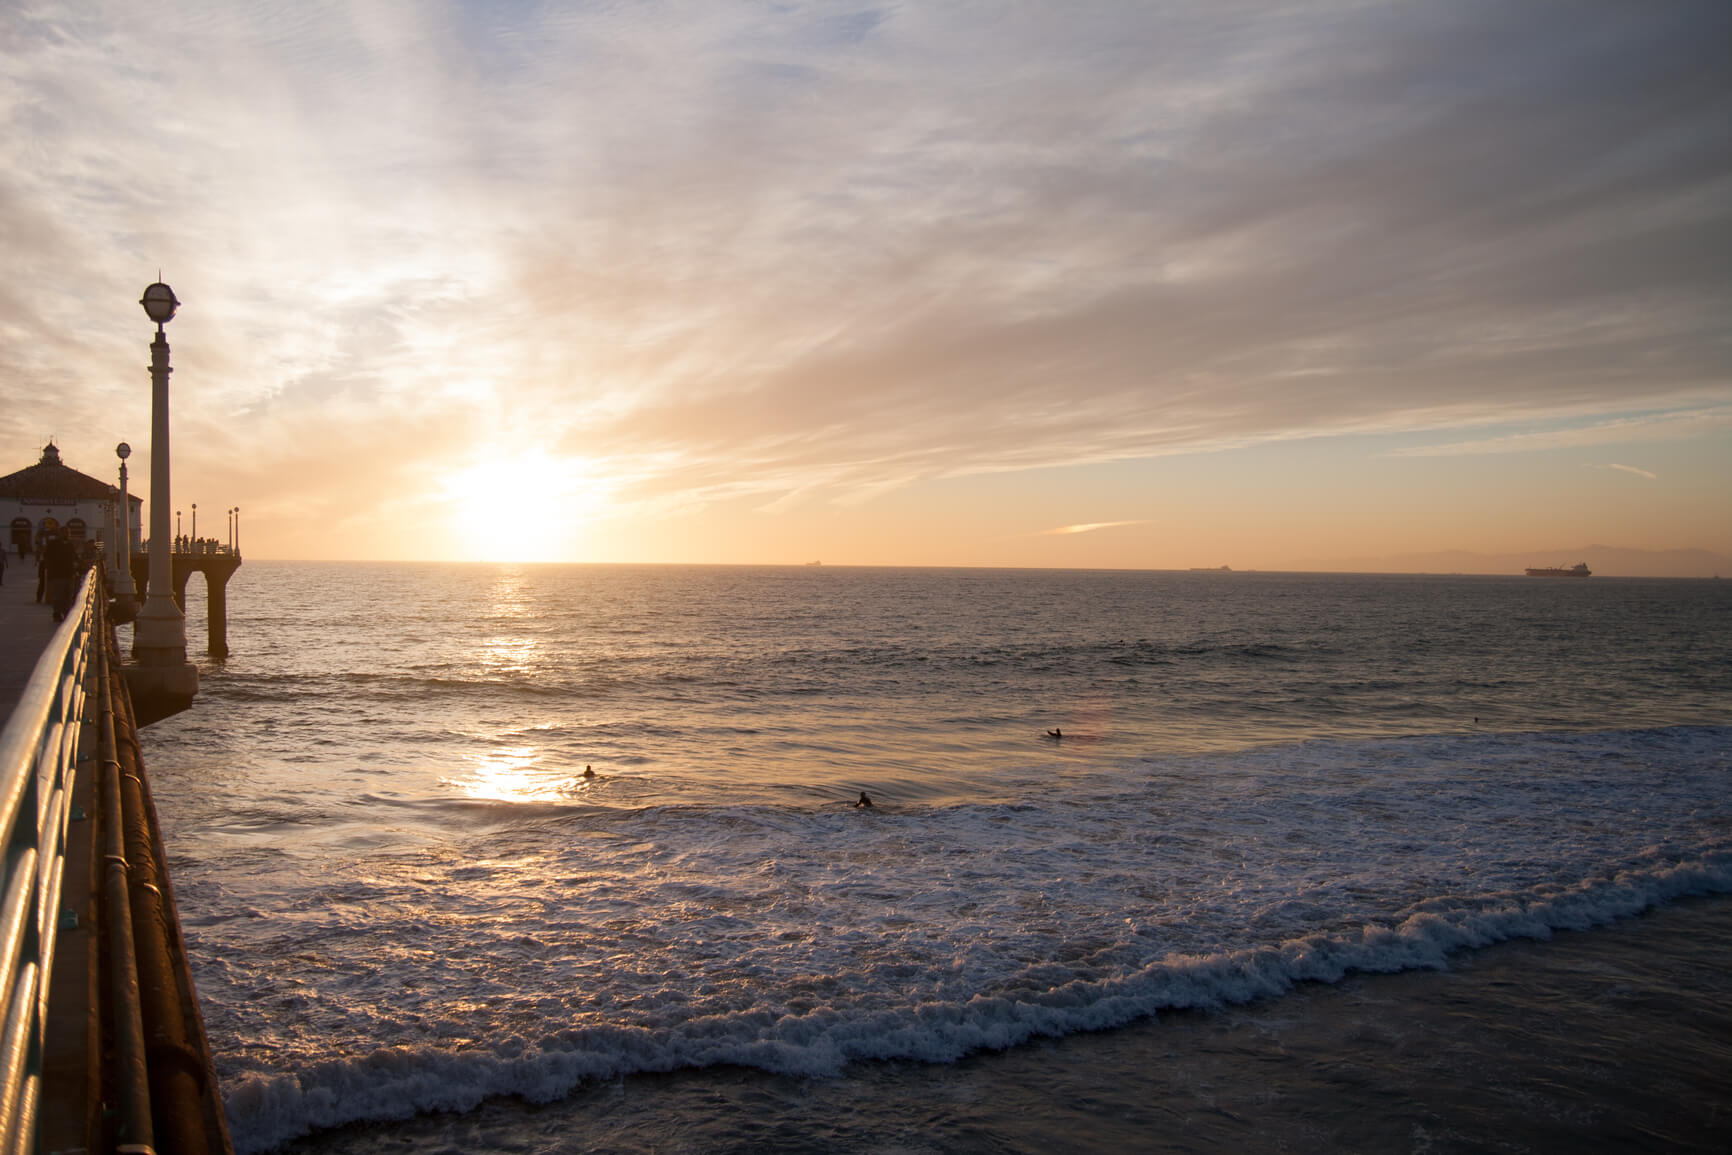 SUMMER: Non-stop from Fort Lauderdale to Long Beach, CA (& vice versa) for only $206 roundtrip